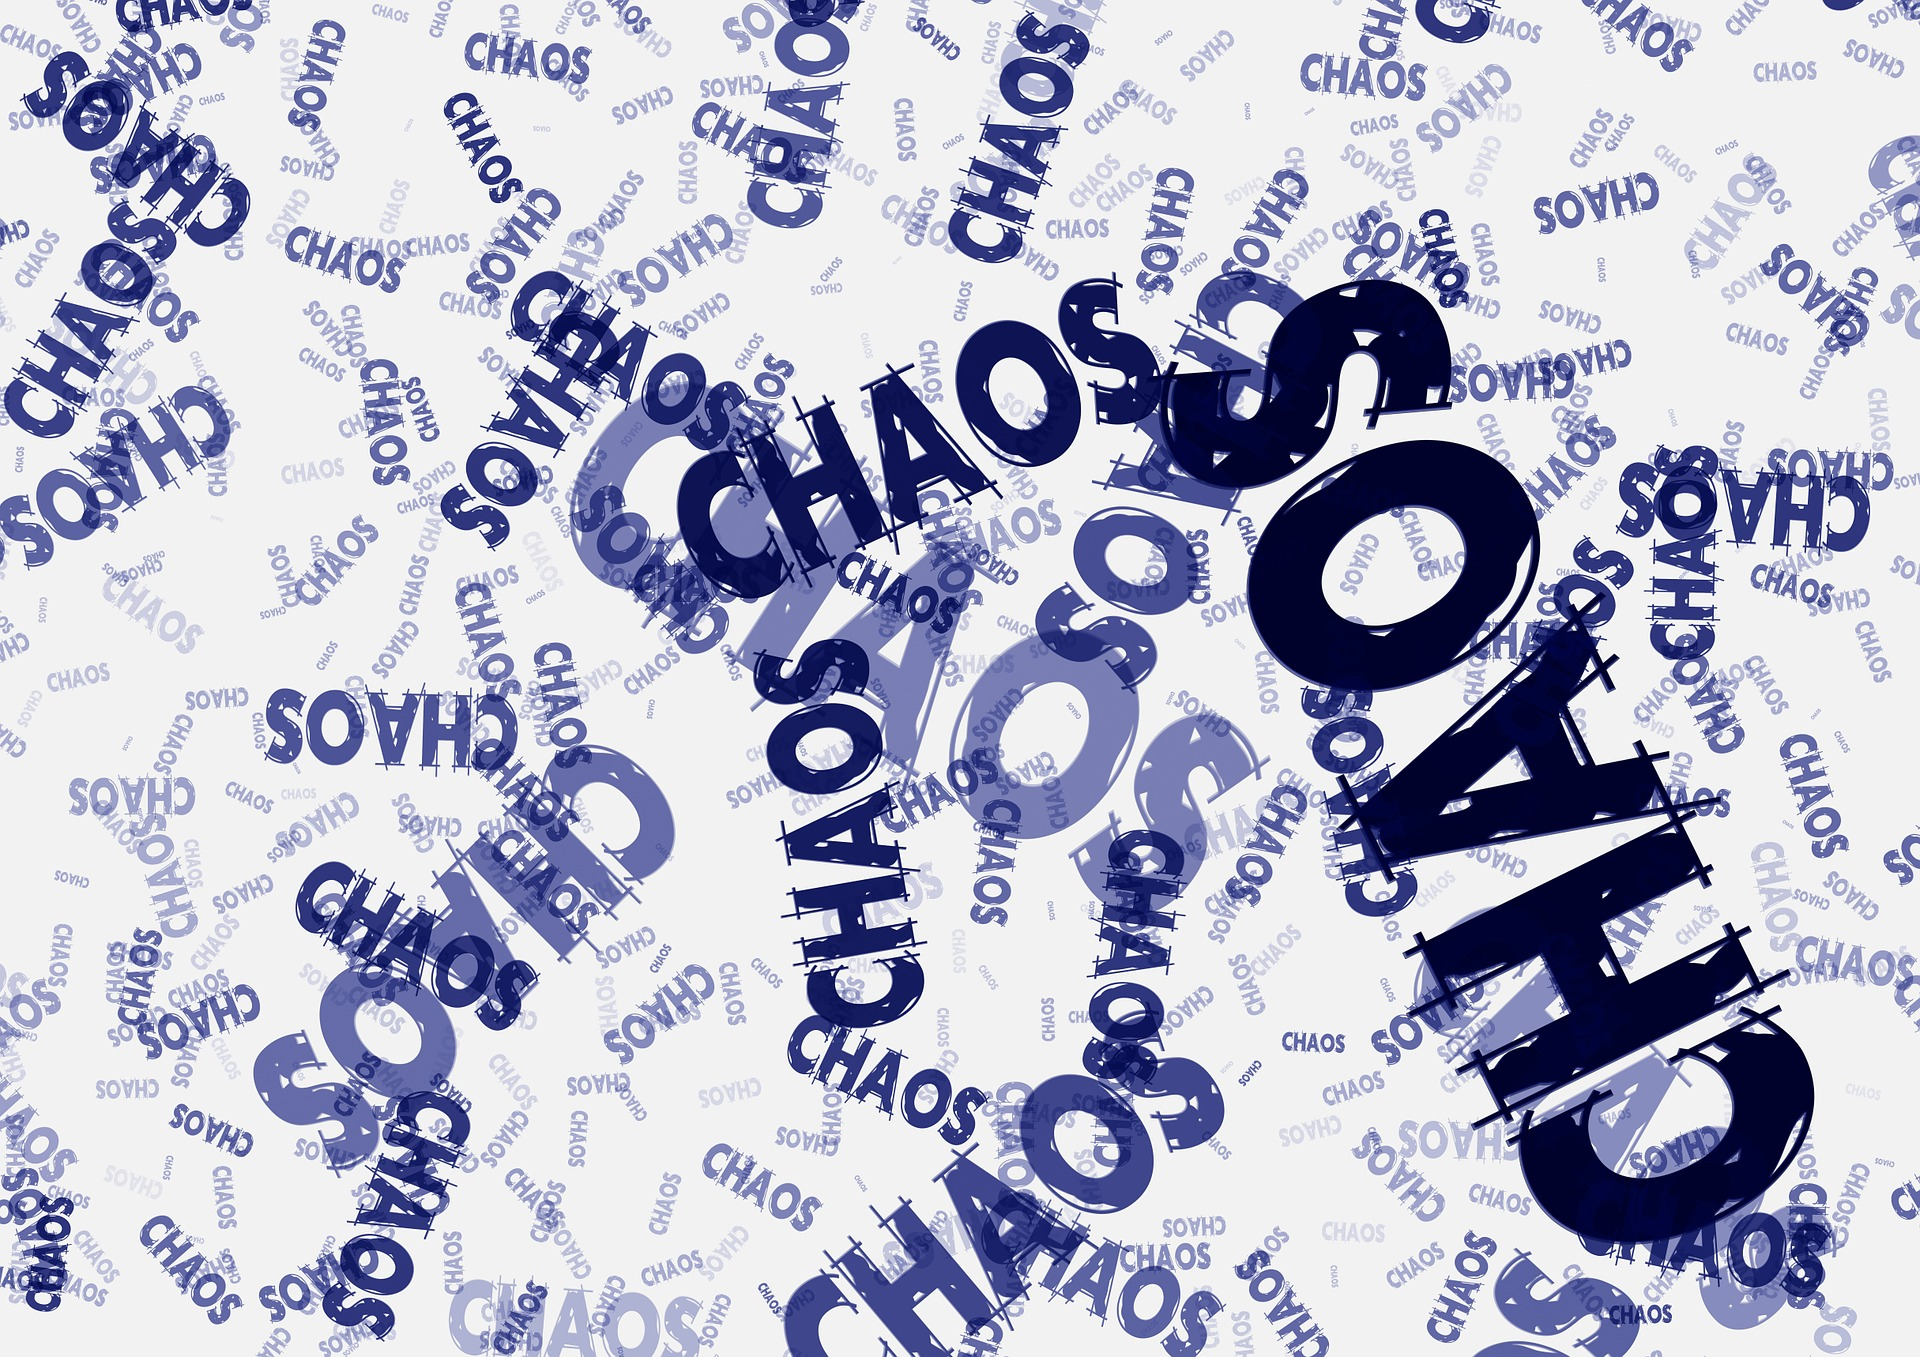 The word chaos shown multiple times in disorganized order.